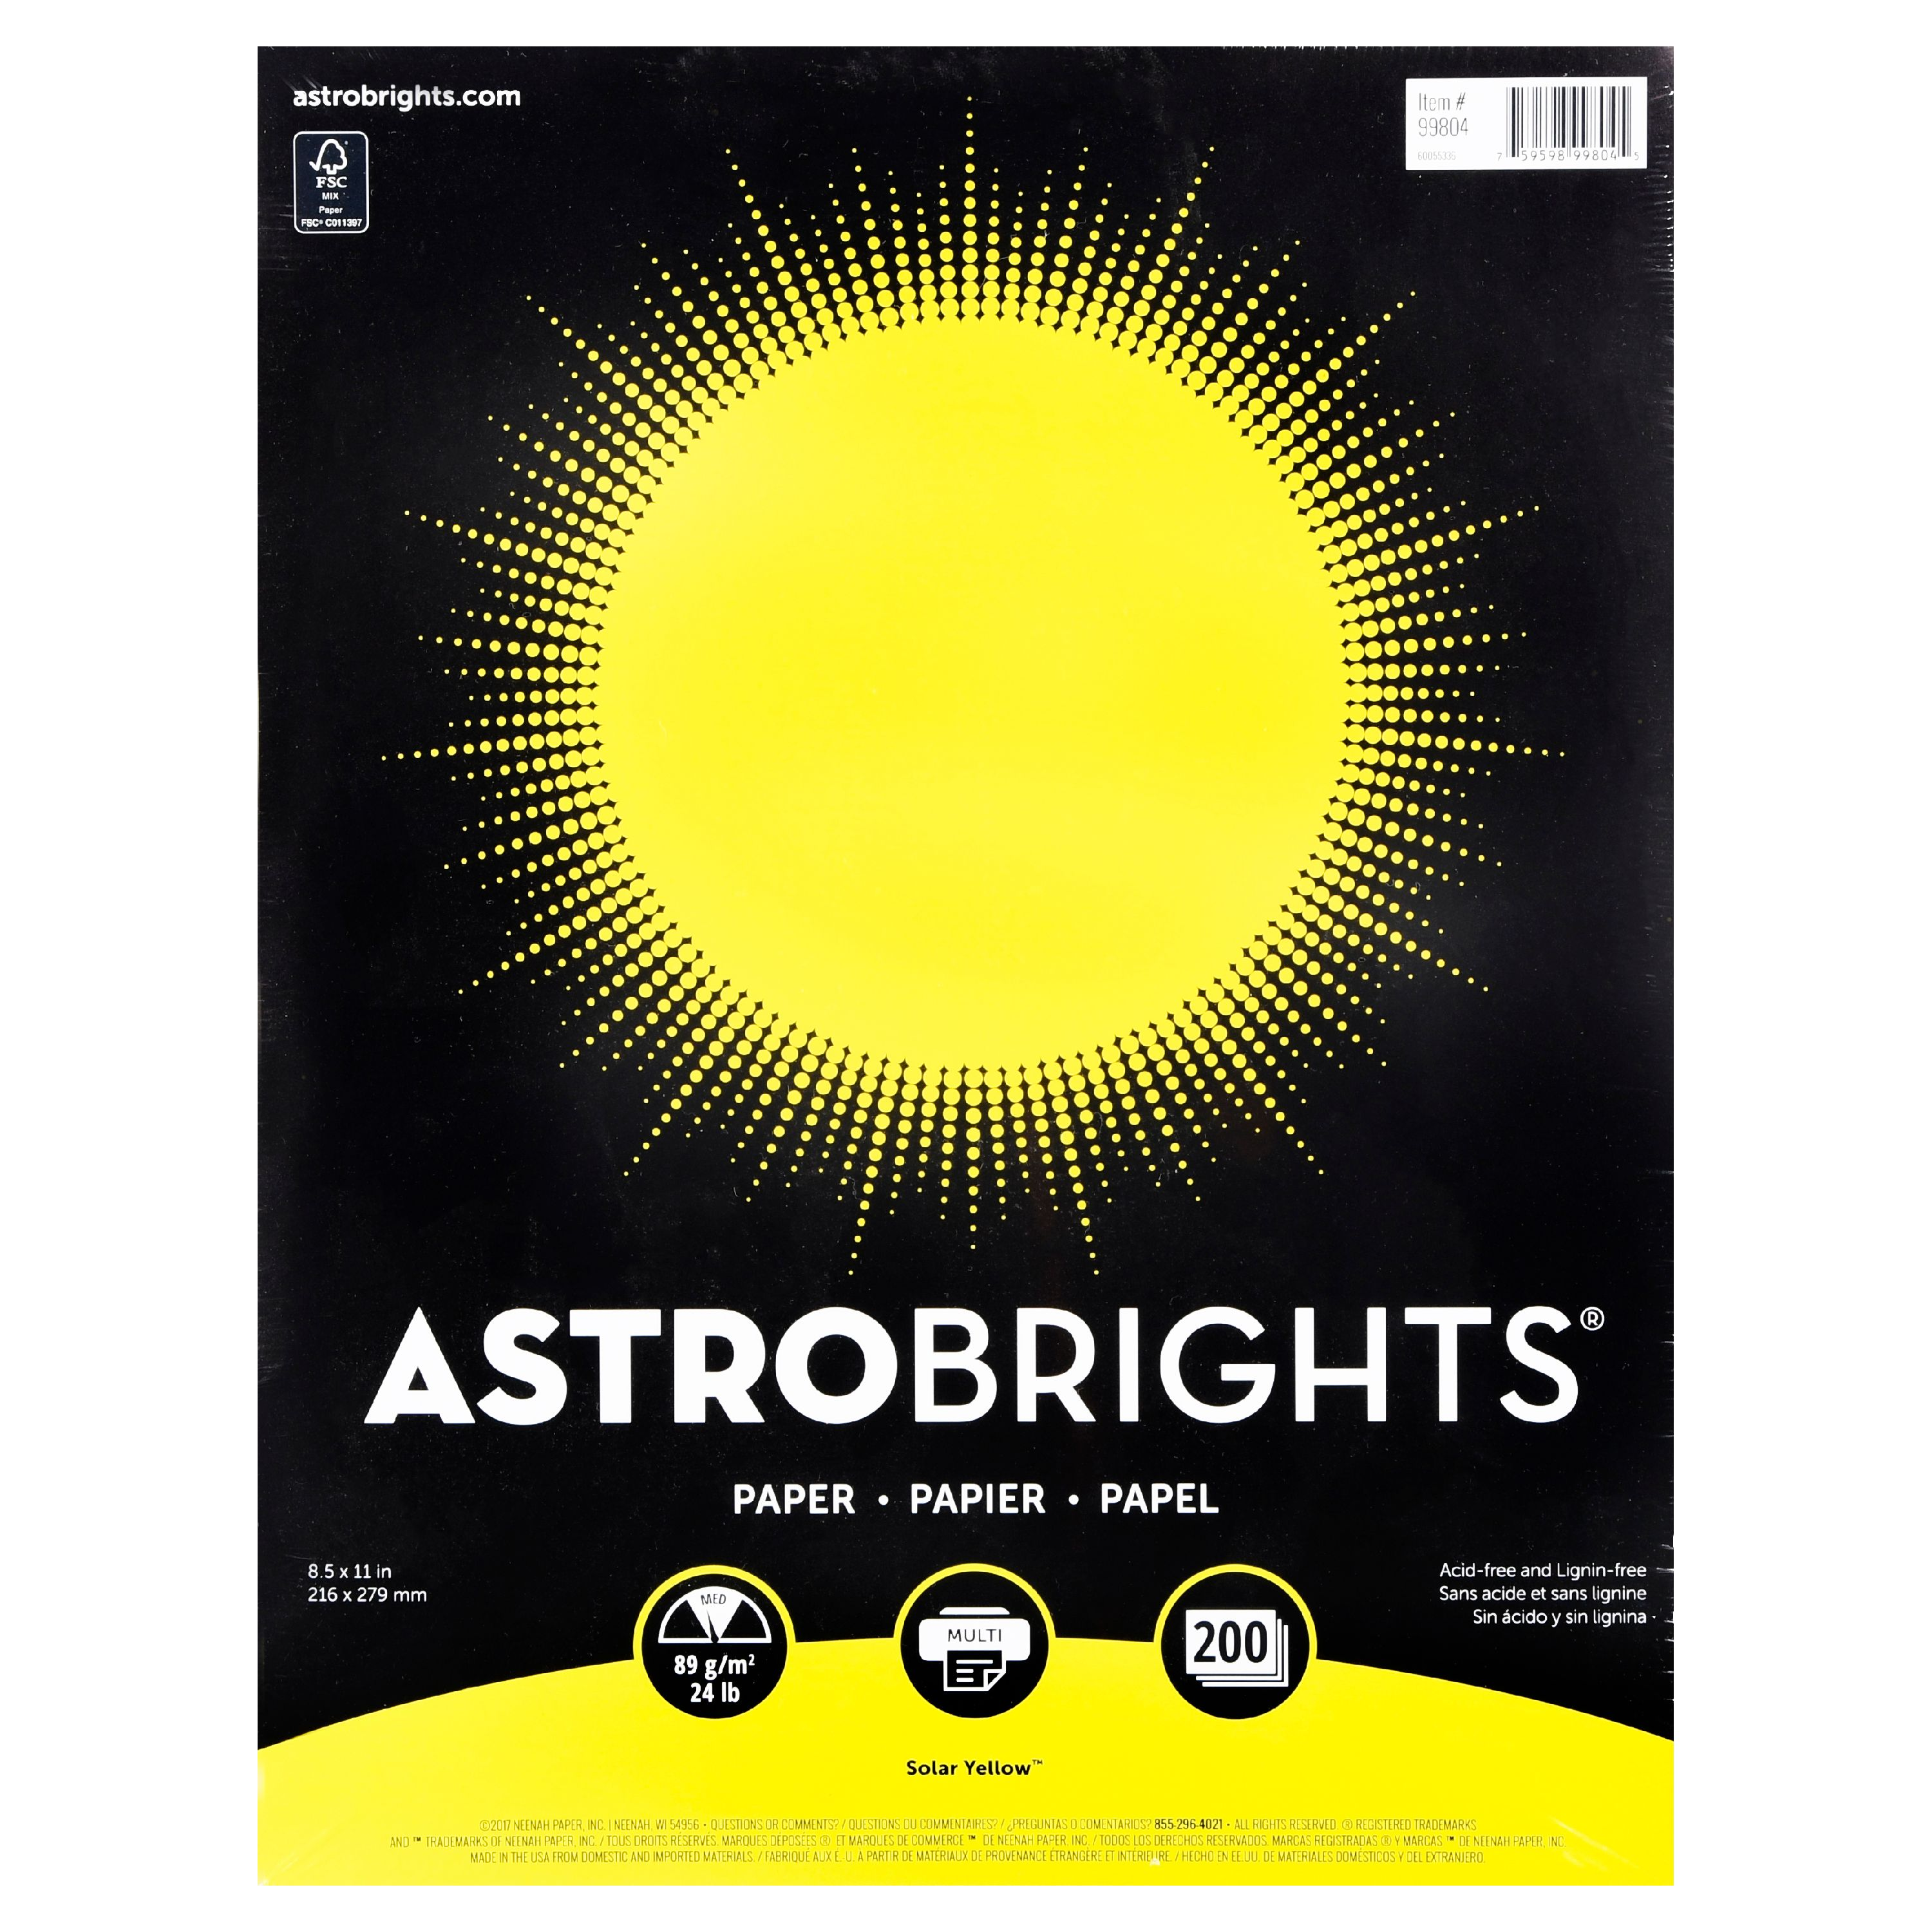 "Astrobrights Color Paper, 8.5"" x 11"", 24 lb/89 gsm, Solar Yellow, 200 Sheets"